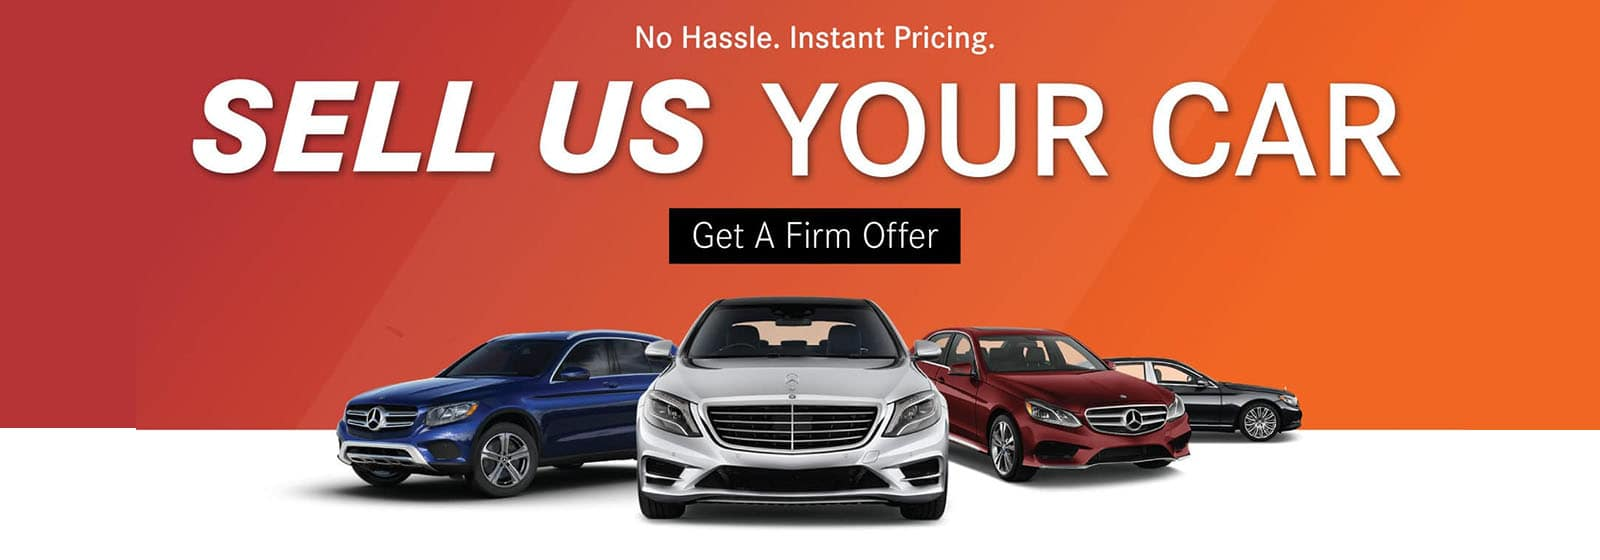 mbnr sell your car